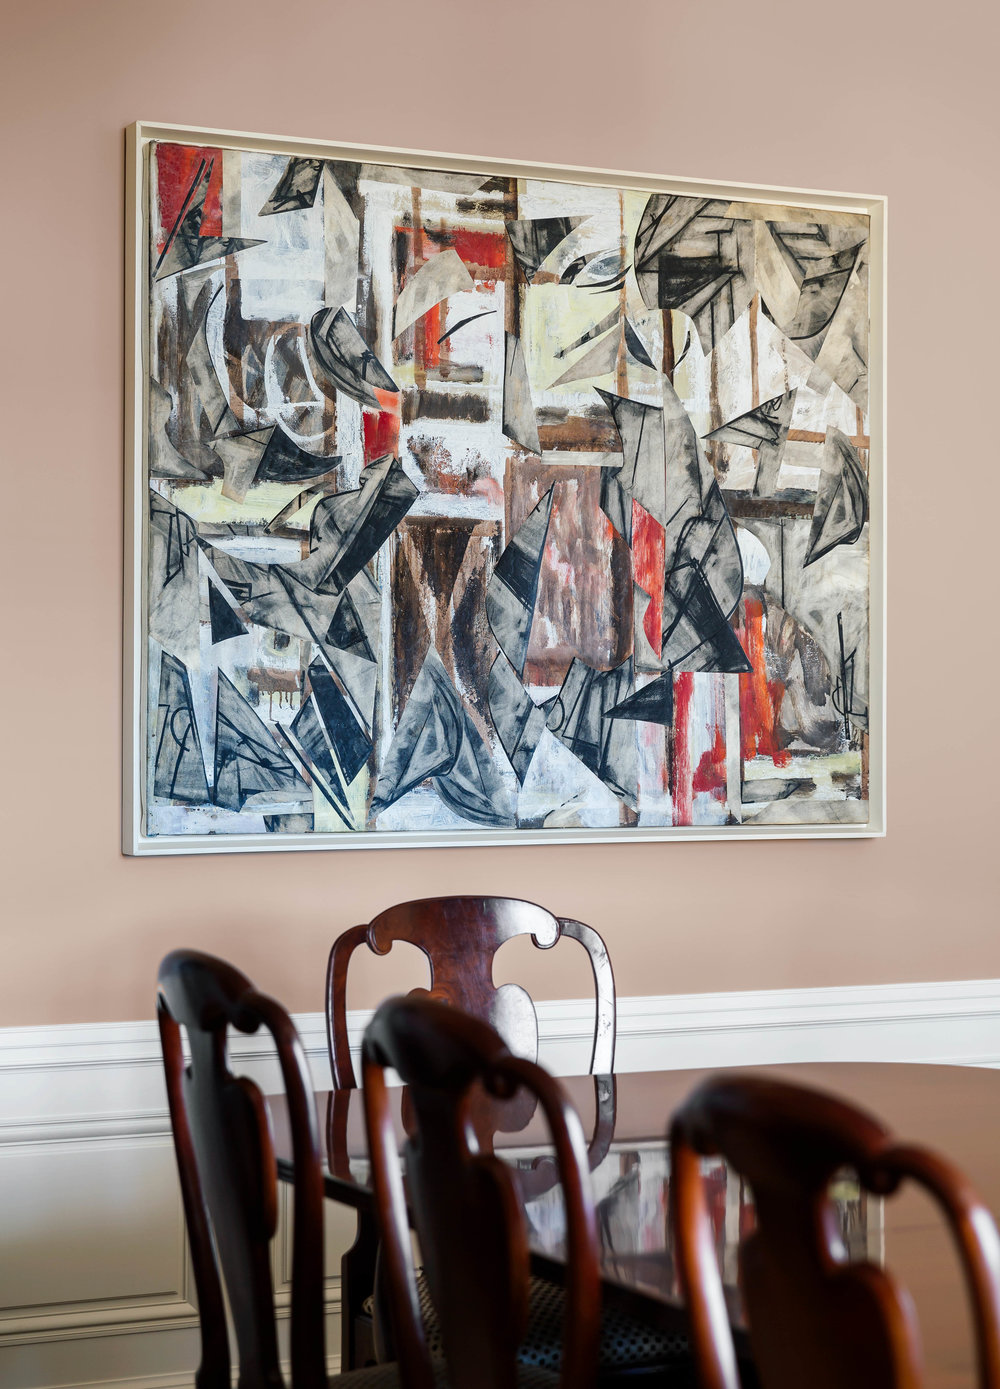 Lee Krasner, Oil on Canvas